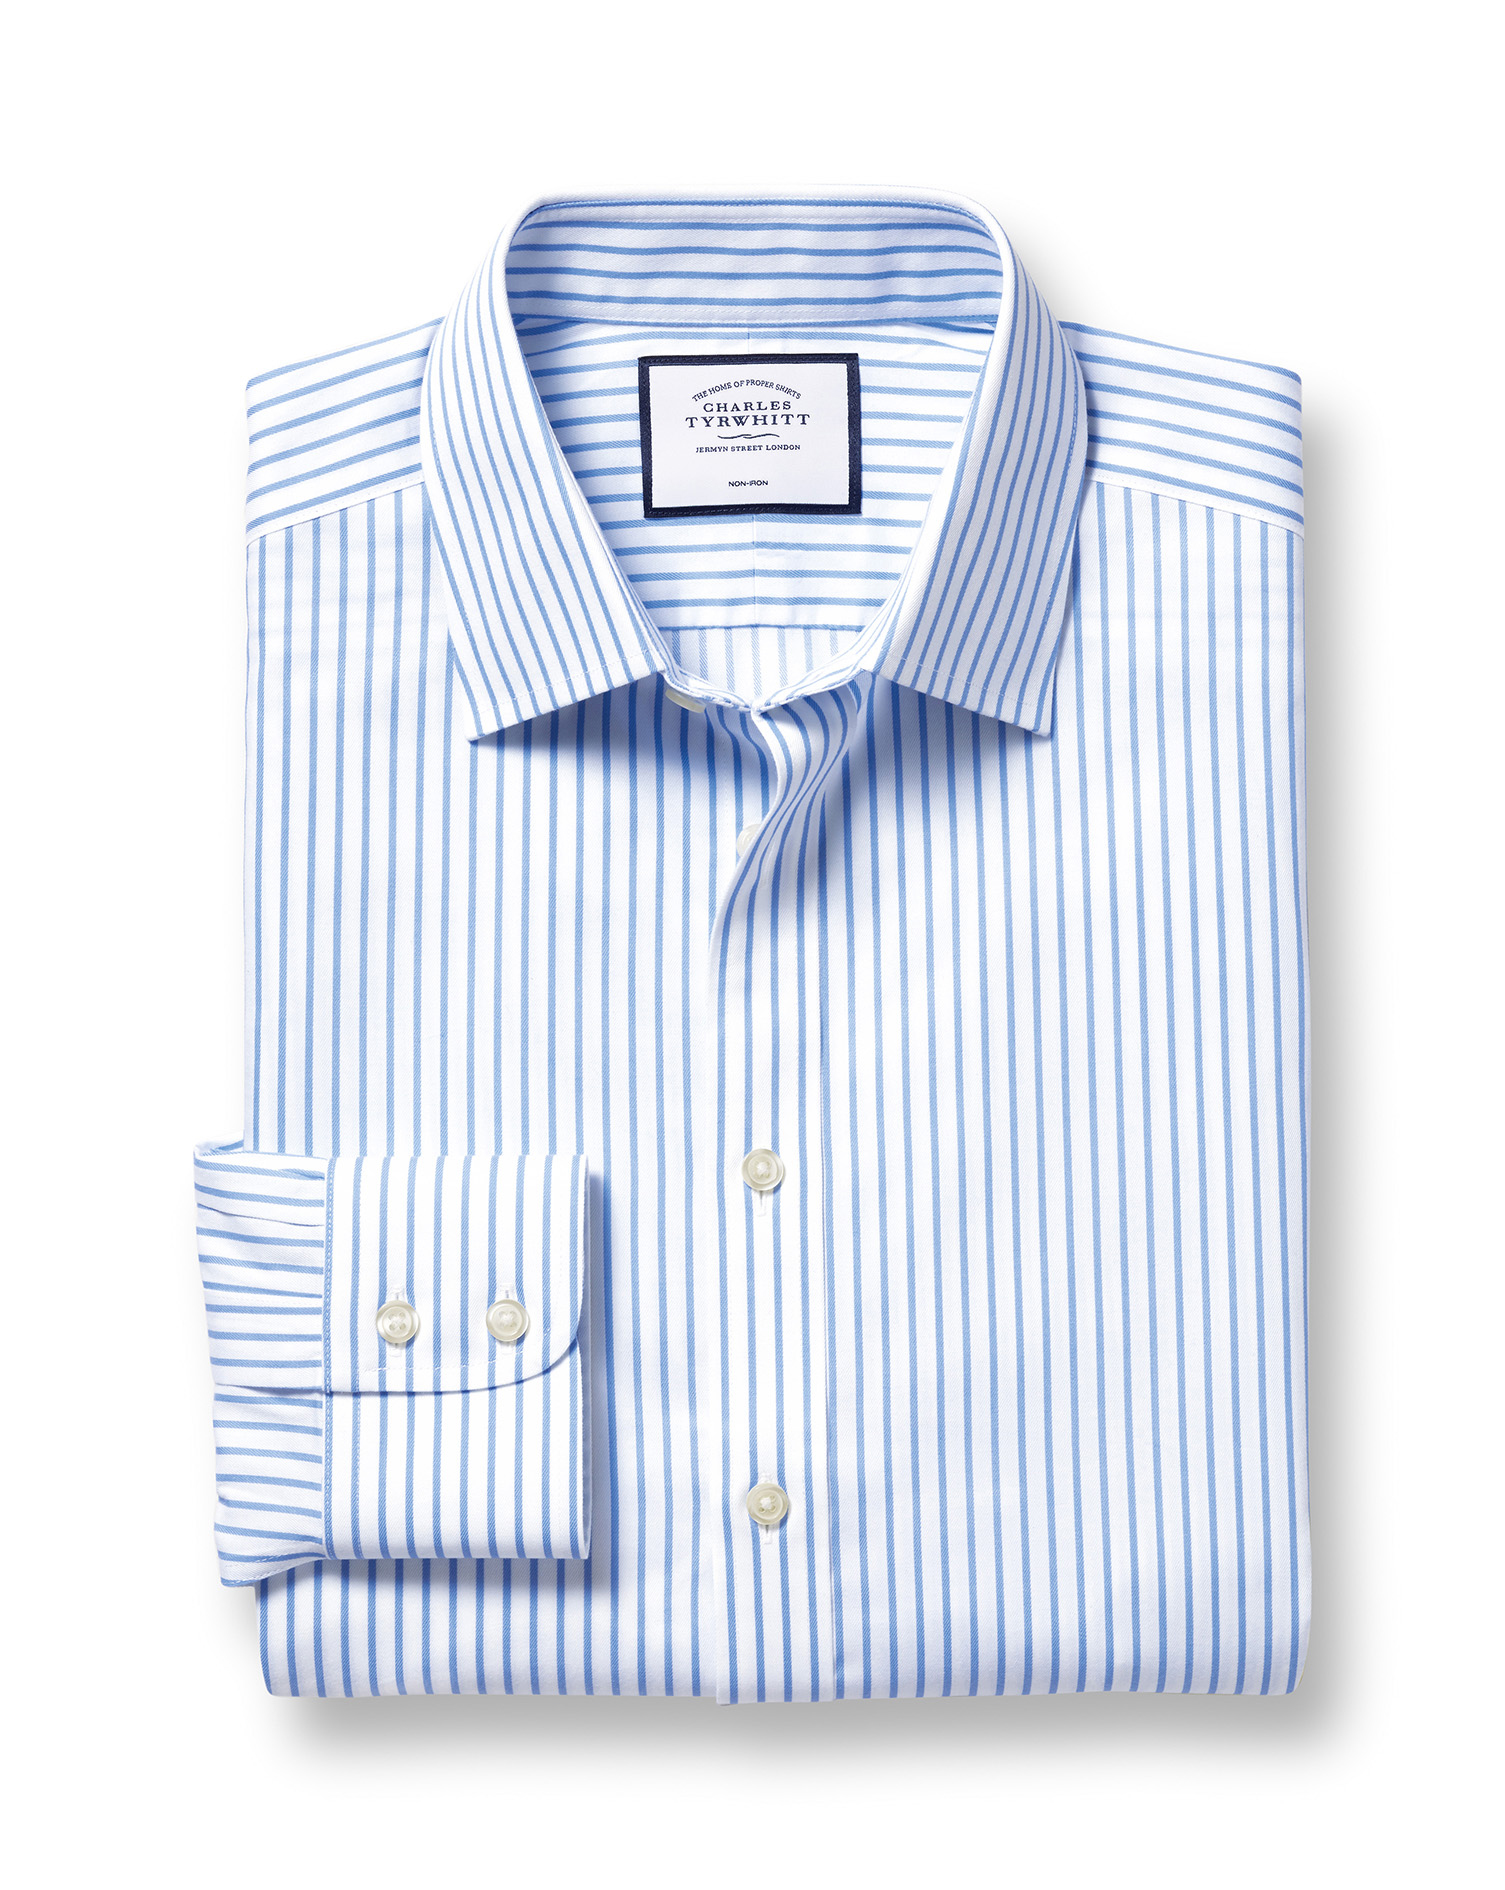 Extra Slim Fit Non-Iron Twill White and Sky Blue Stripe Cotton Formal Shirt Double Cuff Size 16.5/36